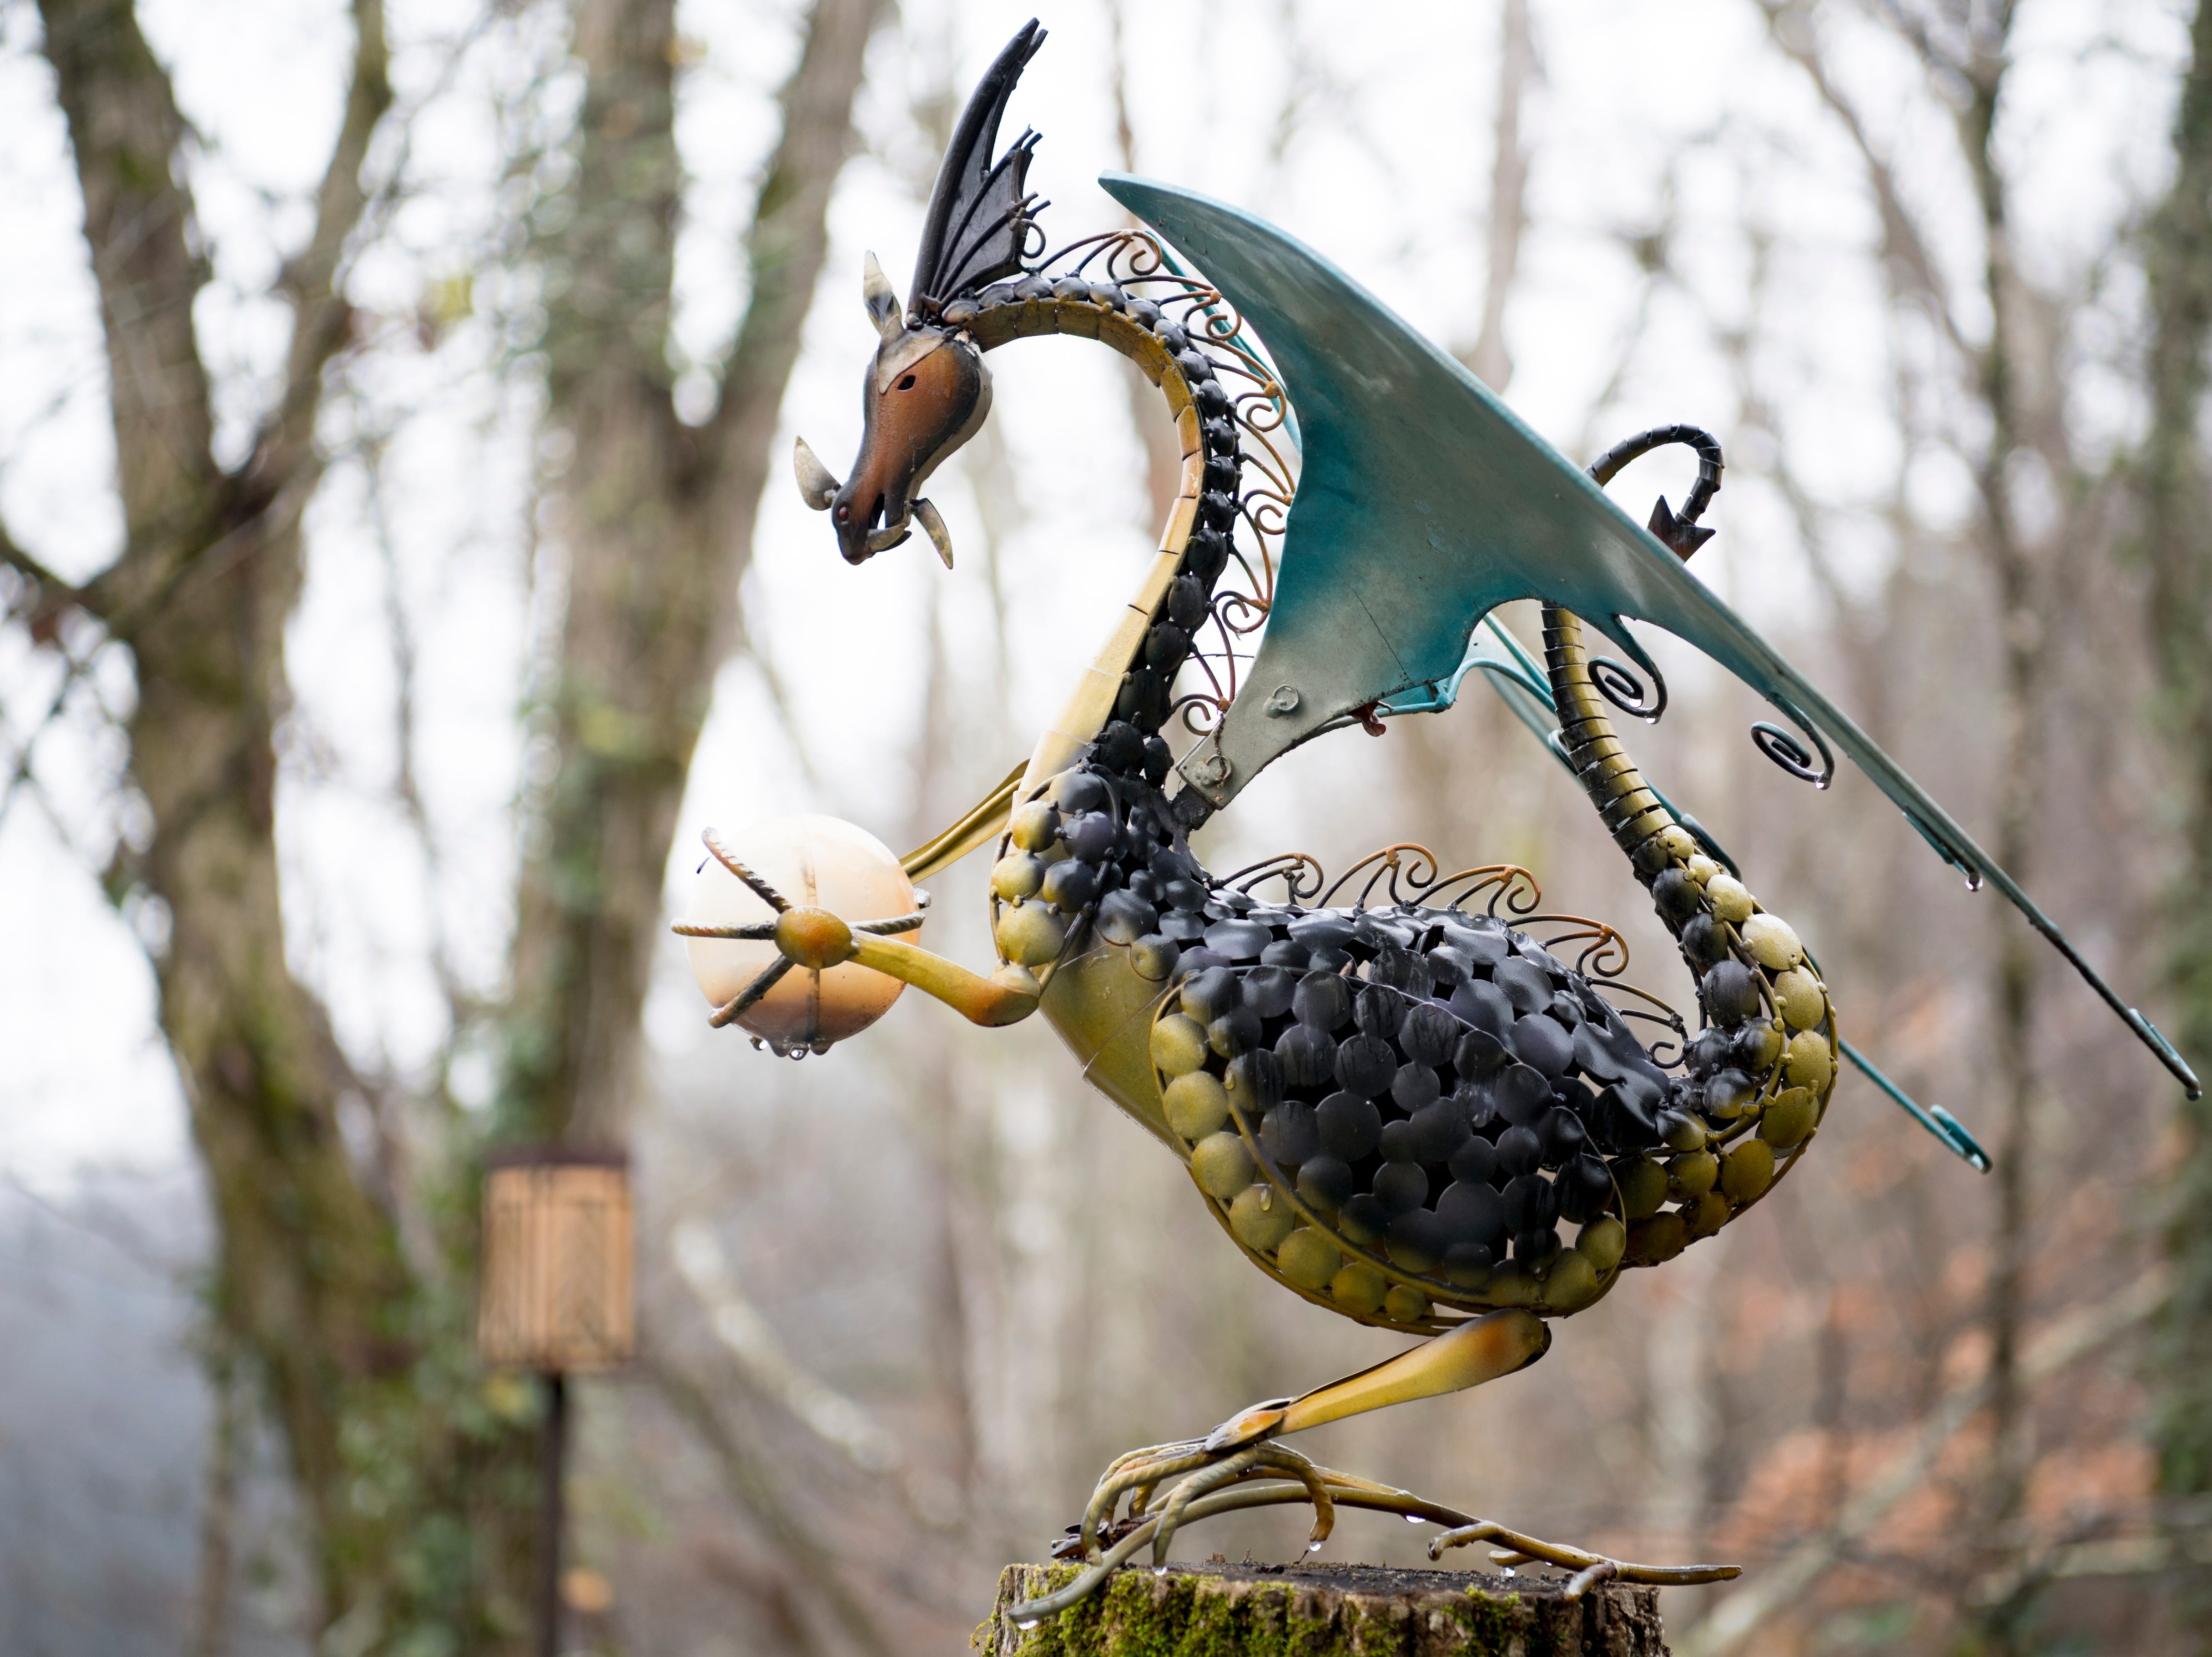 A dragon sculpture on the back porch of Williamswood Castle in South Knoxville, Tennessee on Thursday, January 17, 2019. The home, modeled after a medieval castle, was built by Julia Tucker in 1991 and took 6 years to complete. Many of the items in the home were sourced from around the Knoxville area.